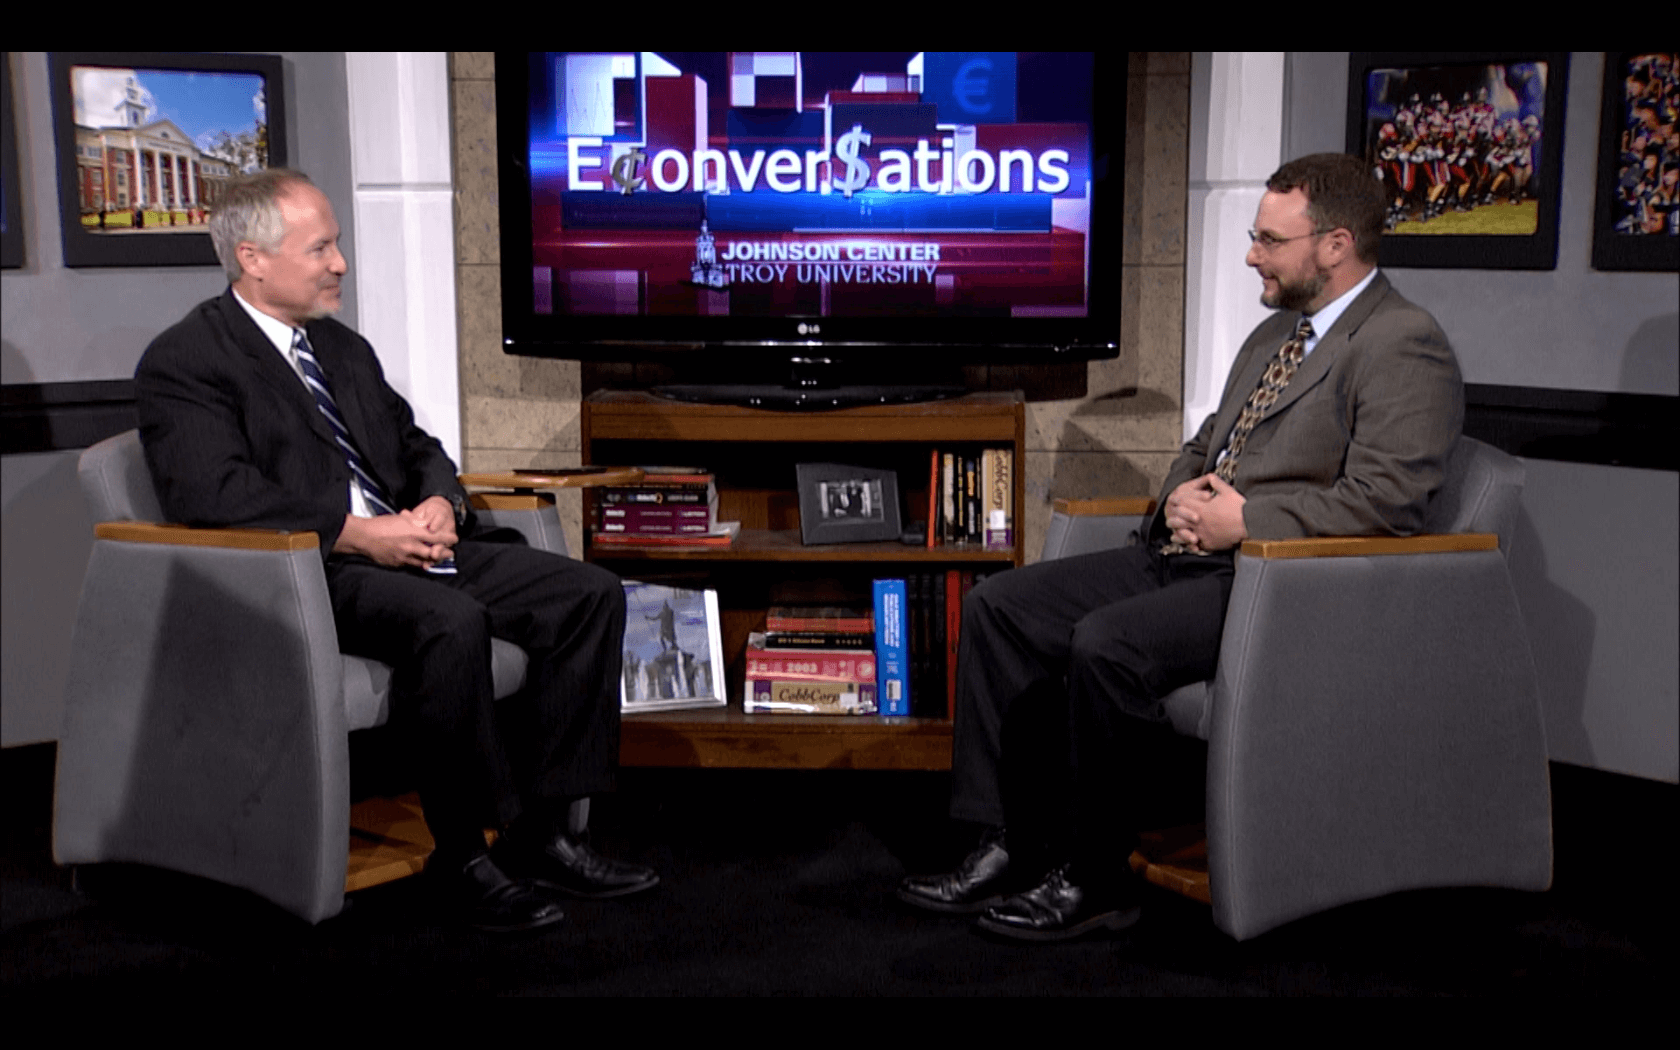 Dr. Dan Sutter, host of the show E-conversations with one of his guests